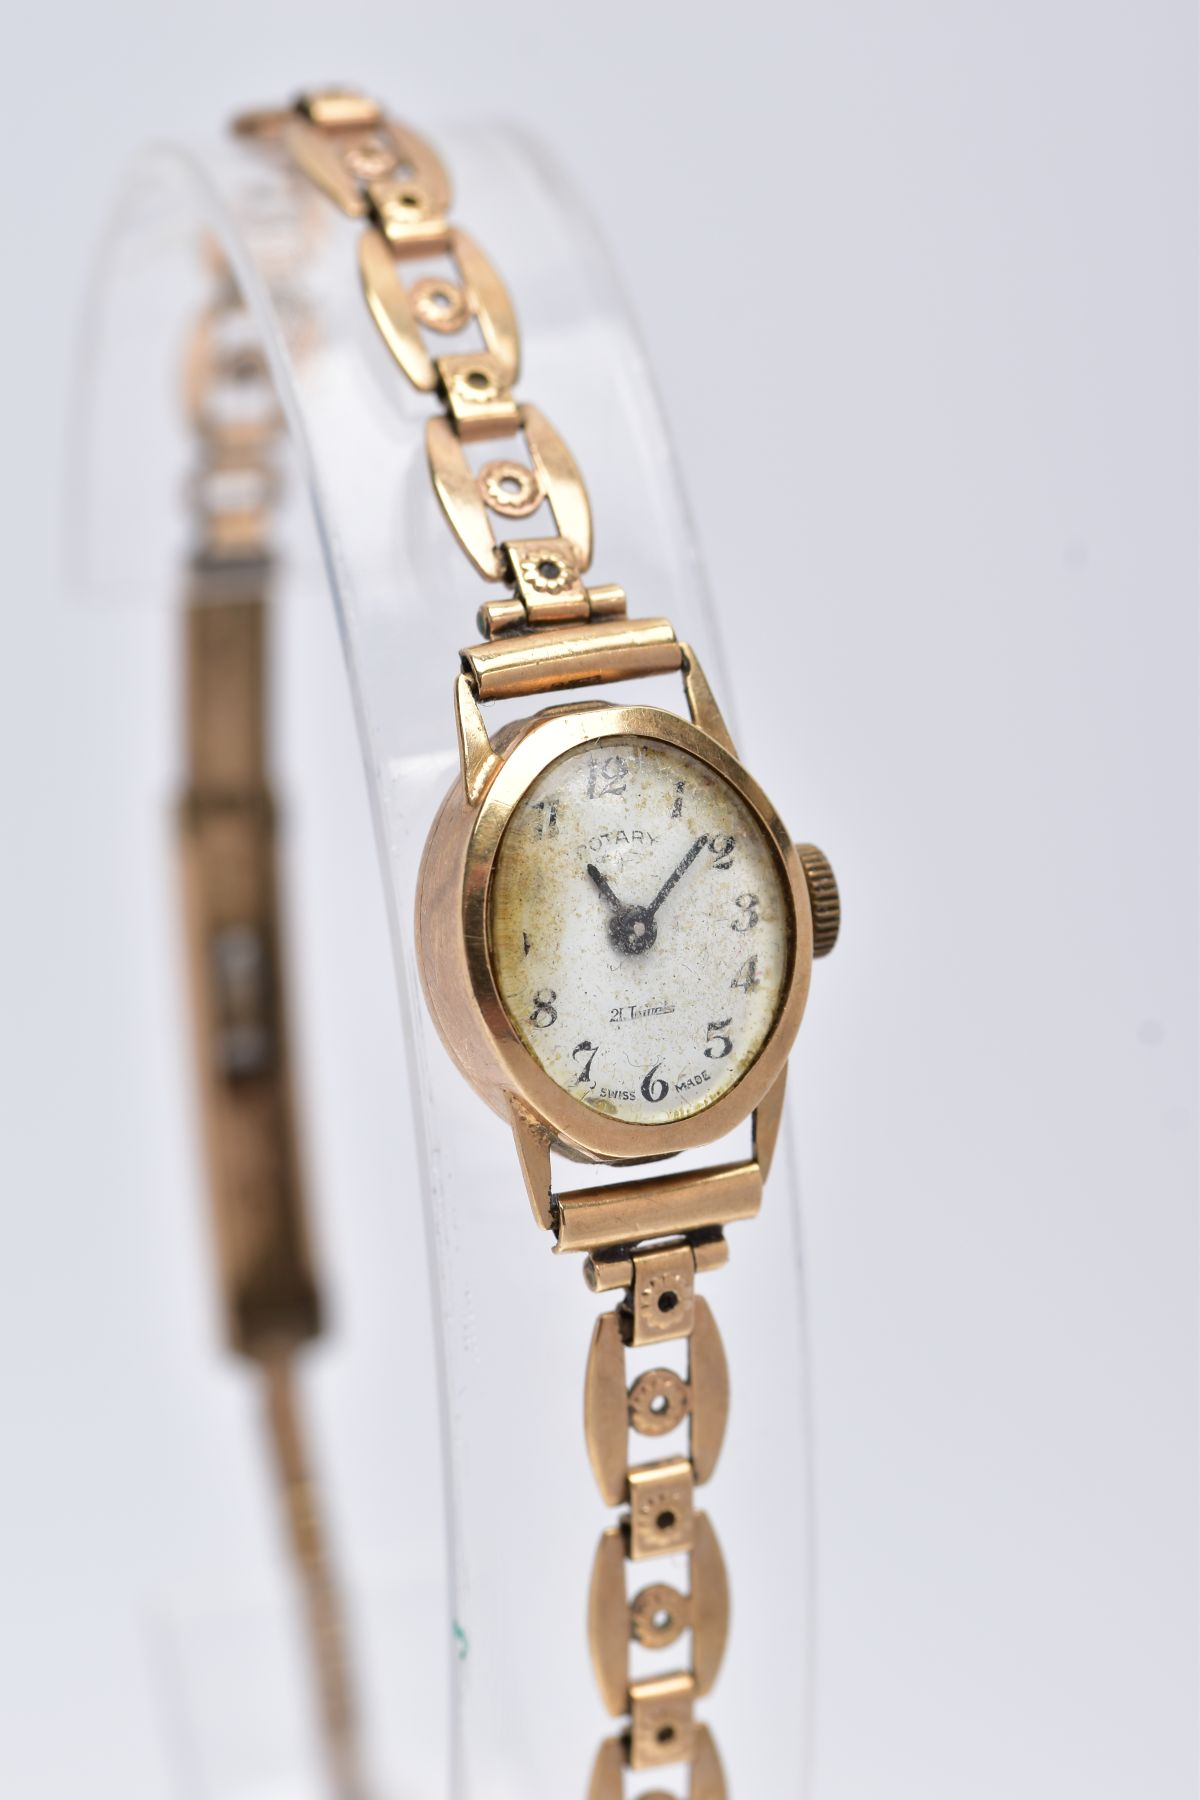 A LADY'S 9CT GOLD ROTARY WRISTWATCH', oval case measuring approximately 16.5mm x 14.0mm, - Image 2 of 5